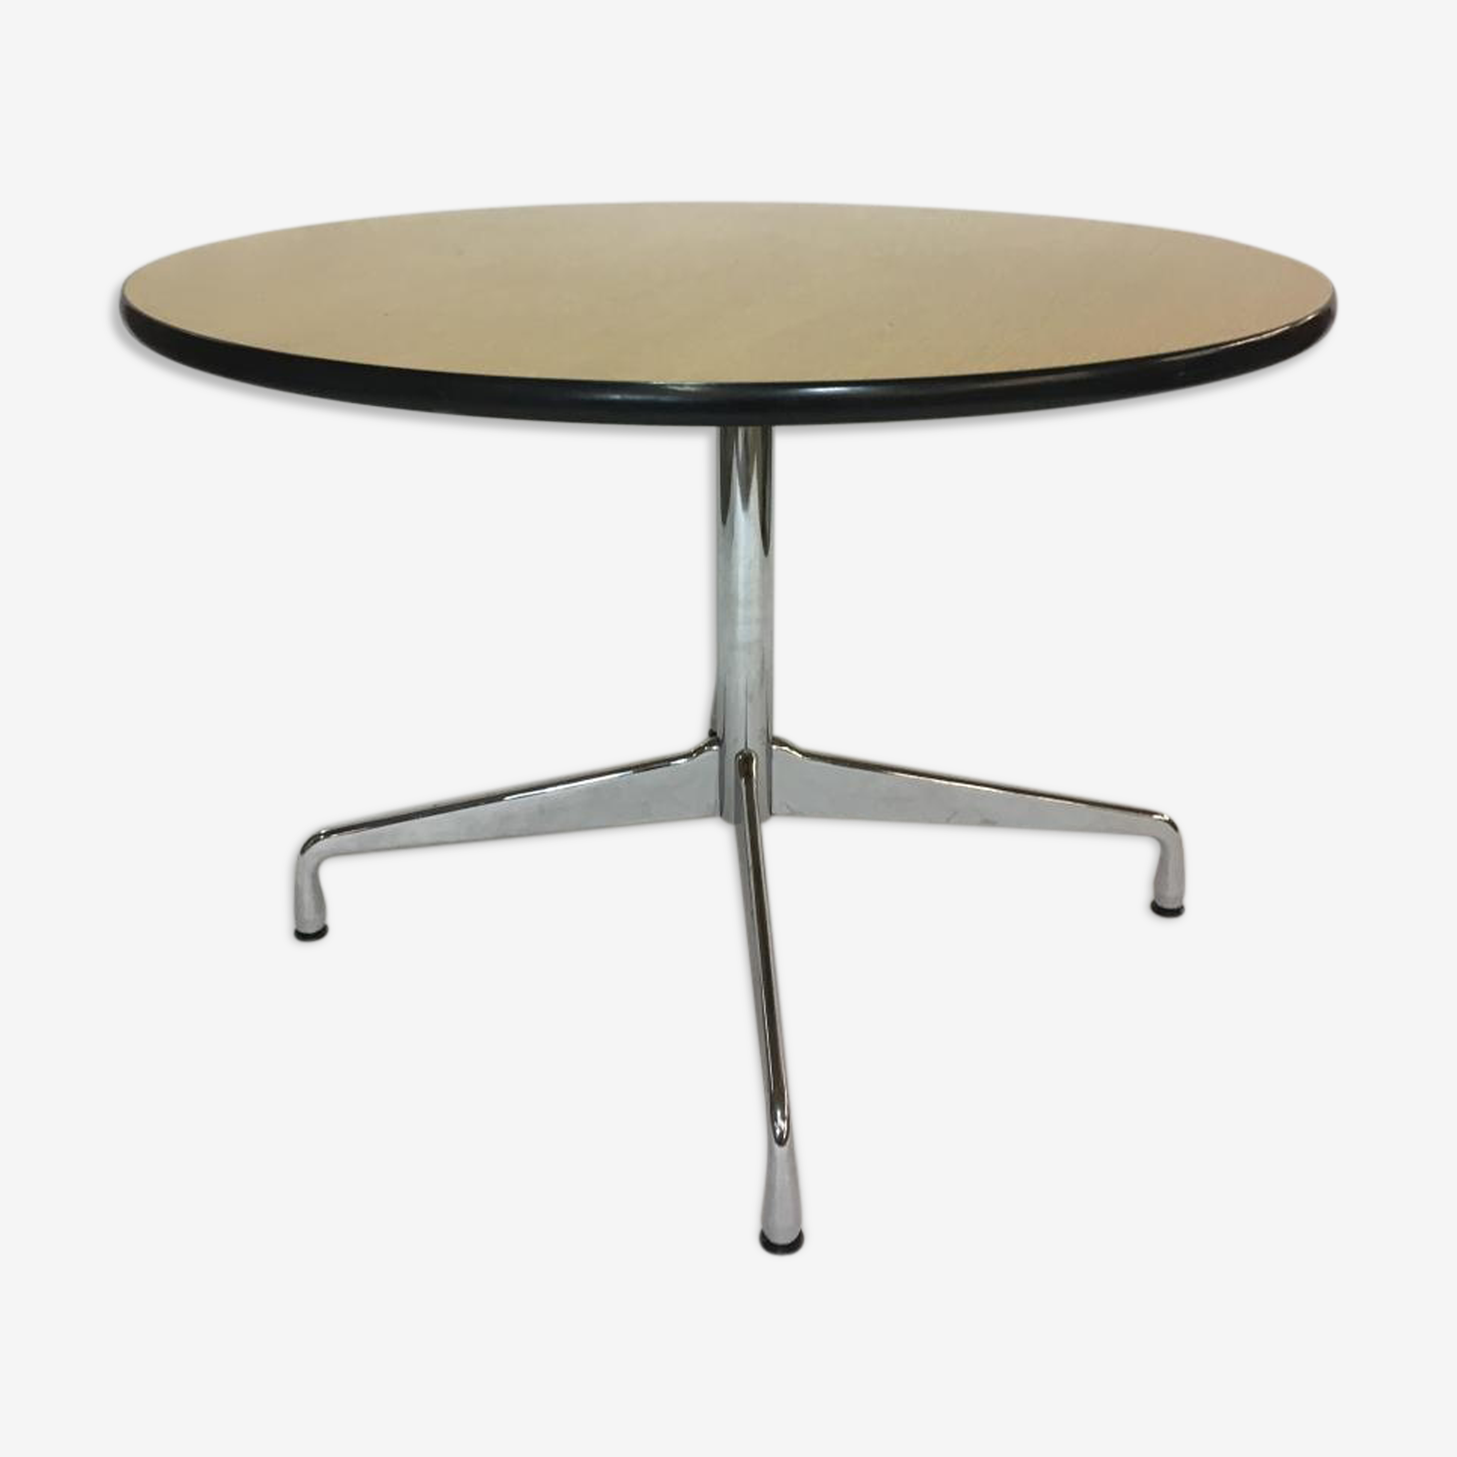 Dining table circular vintage by Charles & Ray Eames for Vitra